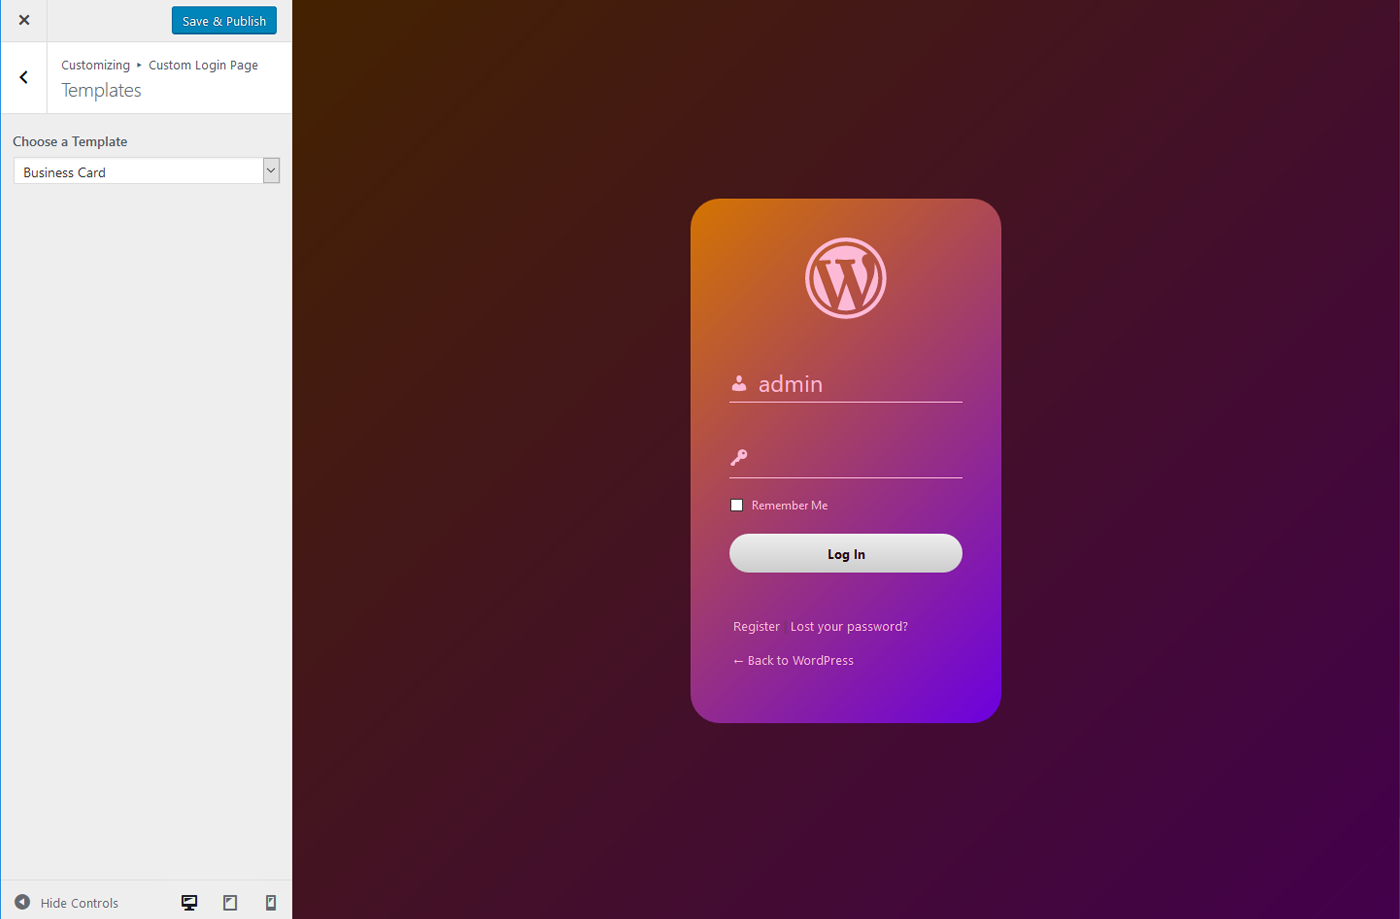 Custom Login Page Templates – Change Logo, Background And CSS – WordPress Plugin